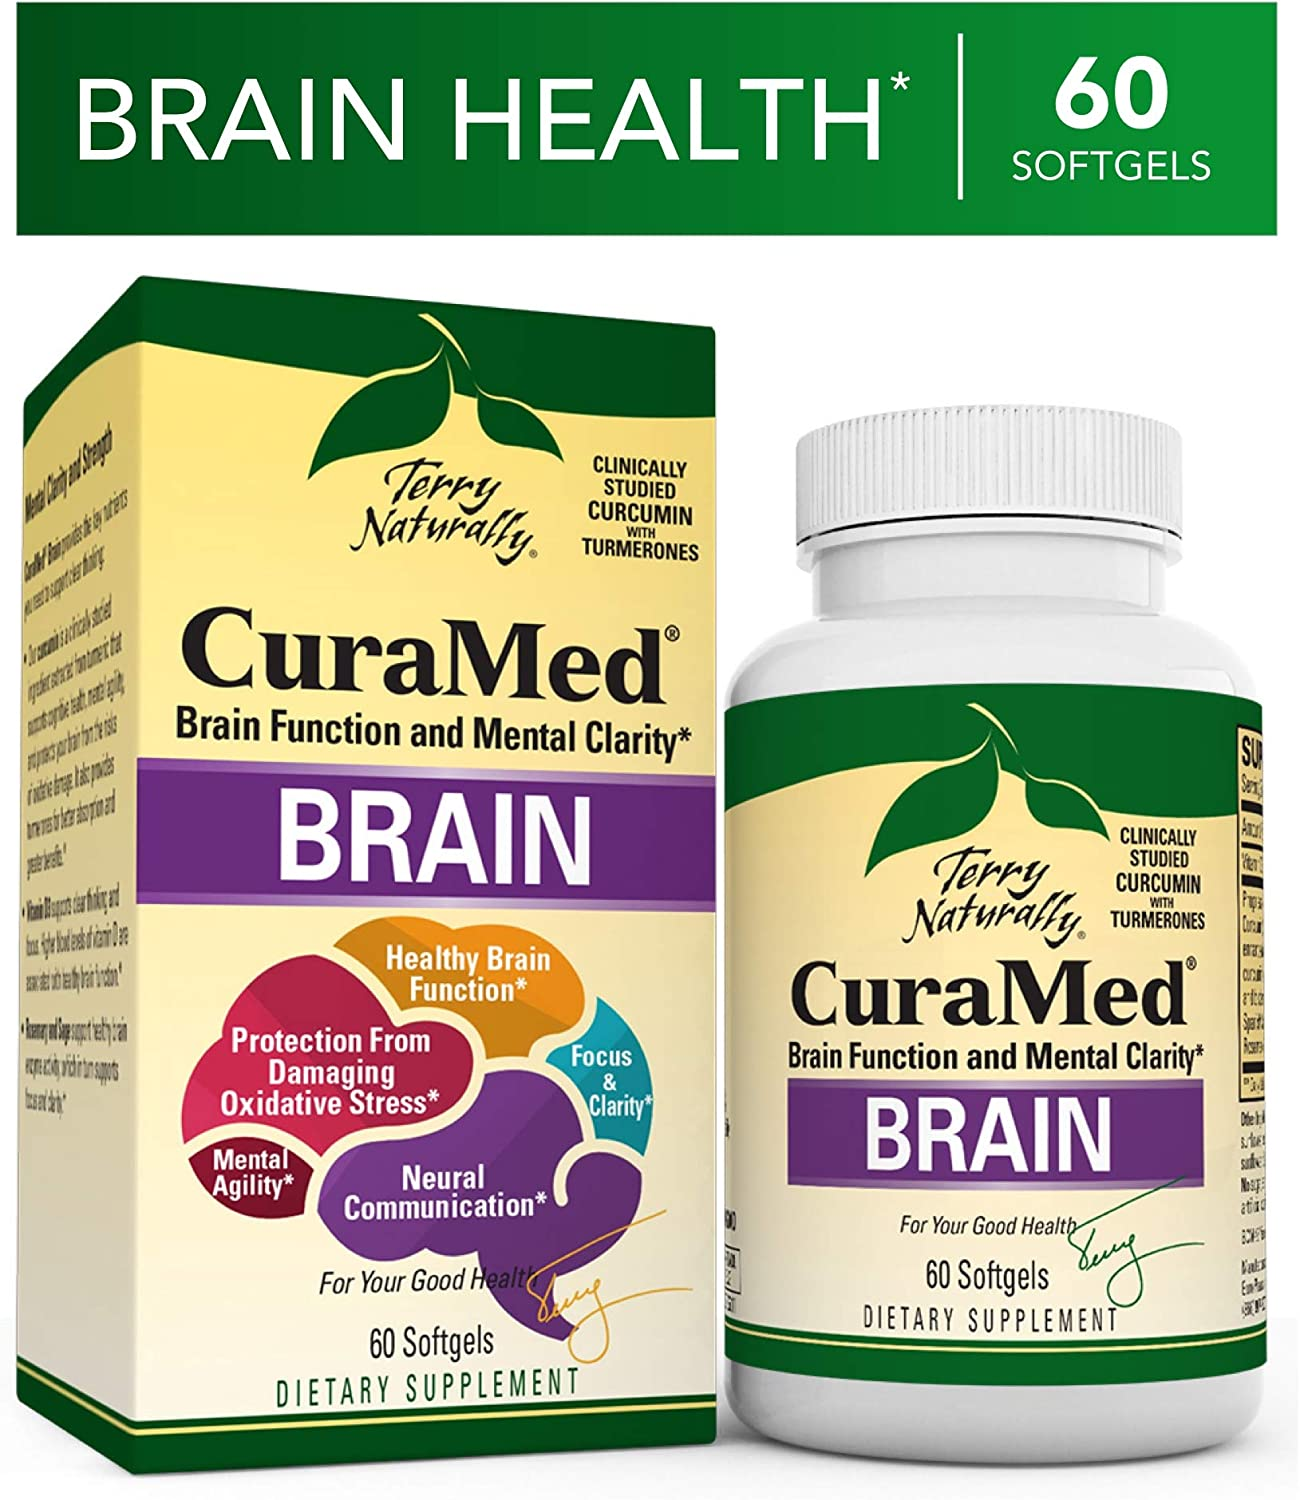 Terry Naturally Curamed Brain - 60 Softgels - BCM-95 Curcumin & Vitamin D3 Supplement, Supports Brain Health, Mental Clarity & Focus - Non-GMO, Gluten-Free - 30 Servings